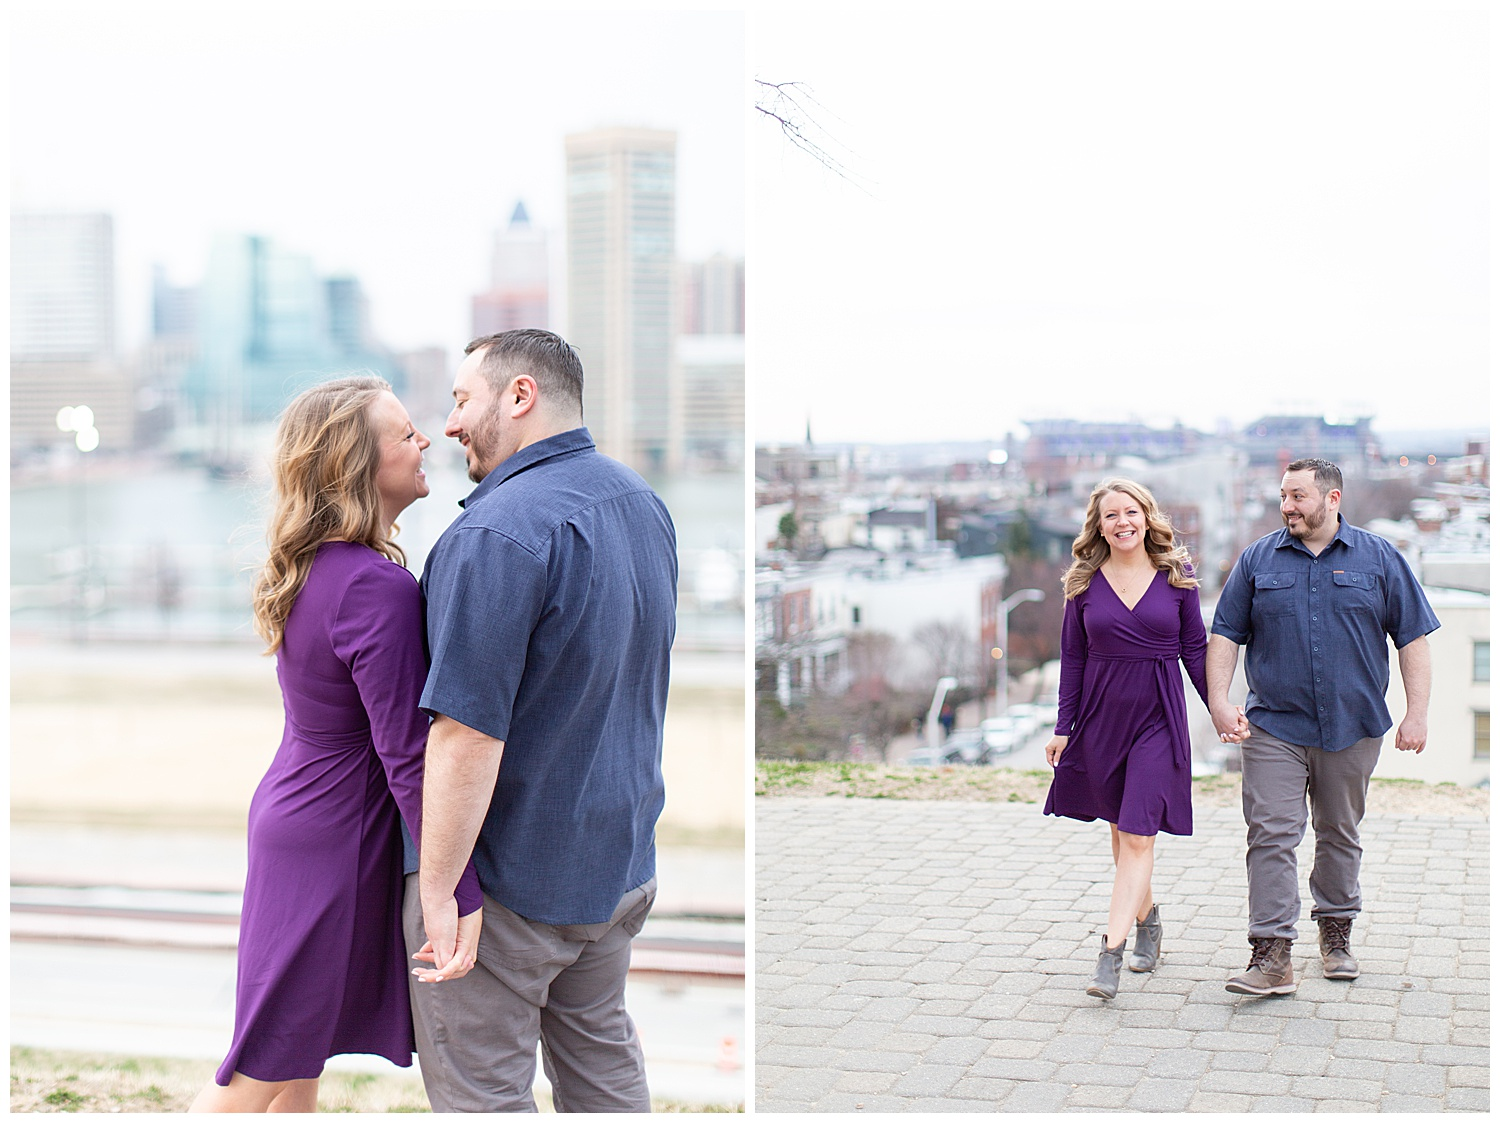 emily-belson-photography-baltimore-engagement-12.jpg